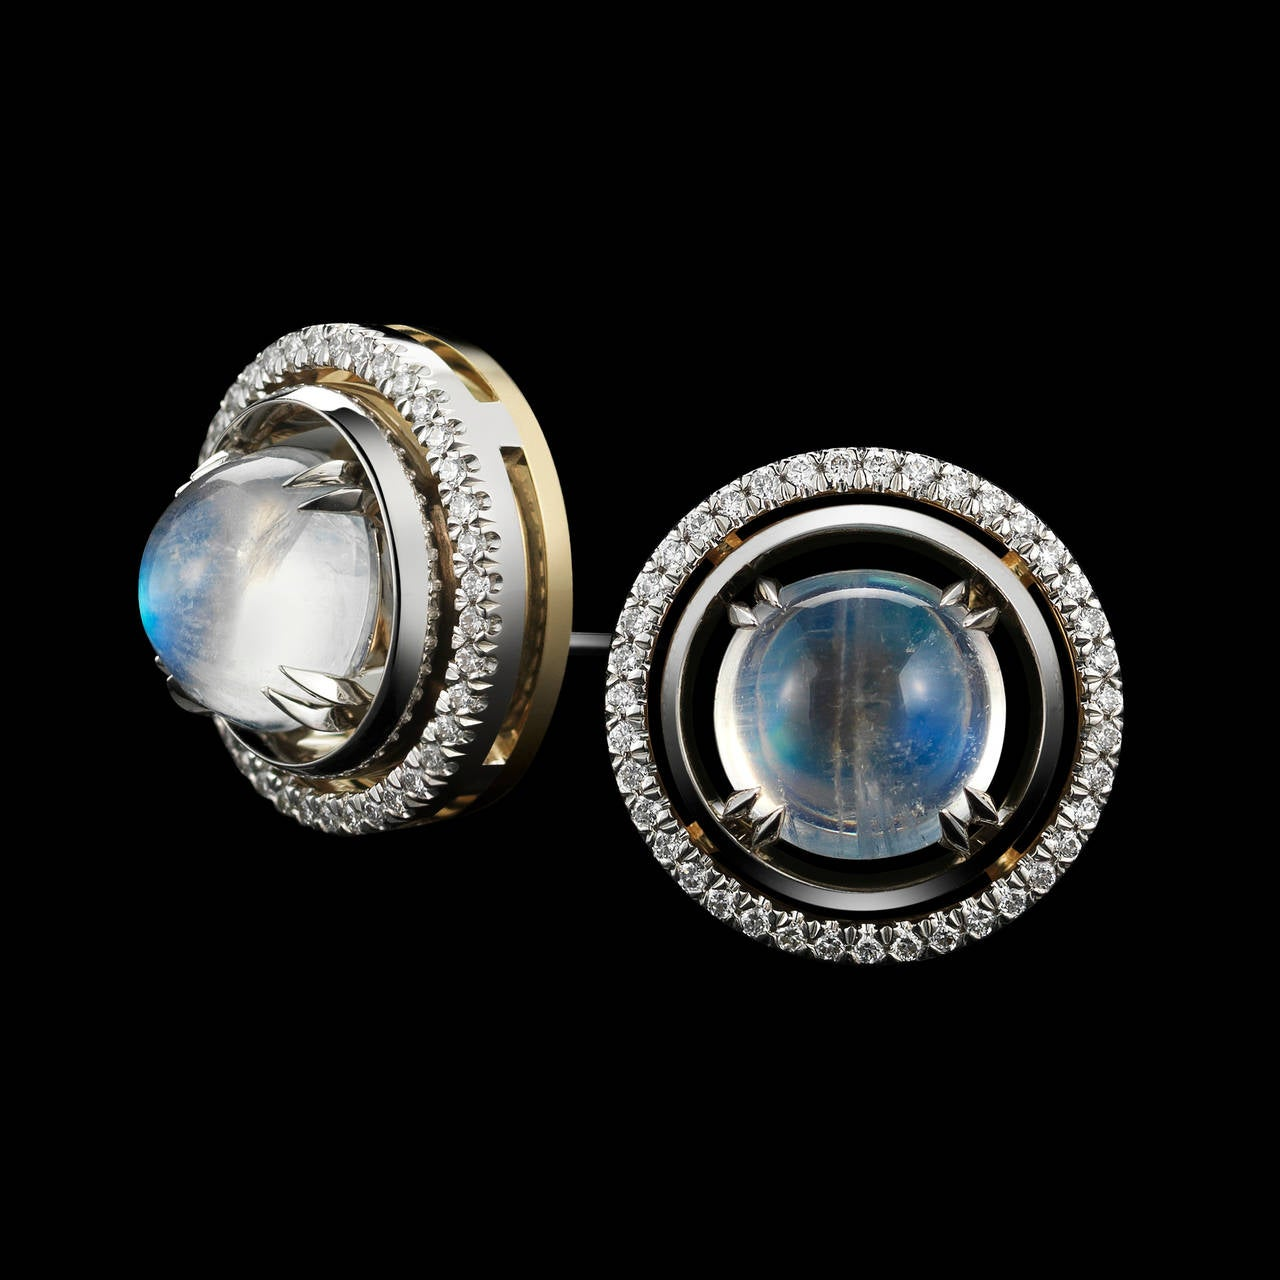 Contemporary Alexandra Mor Medium Moonstone Studs with Diamond Earring Jackets For Sale